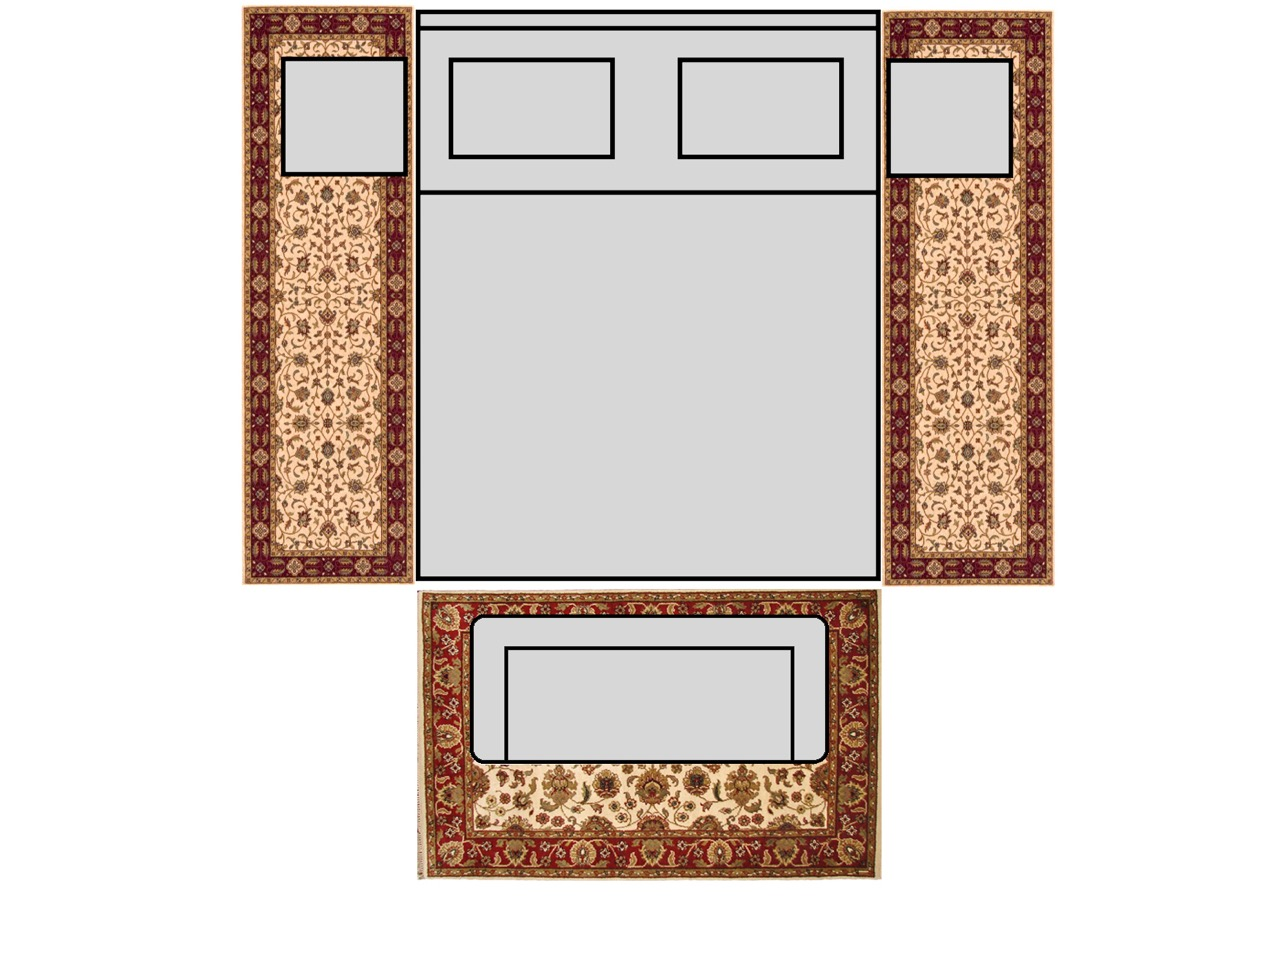 Bedroom King Size Bed With 8 Runners Amp 4x6 Rug